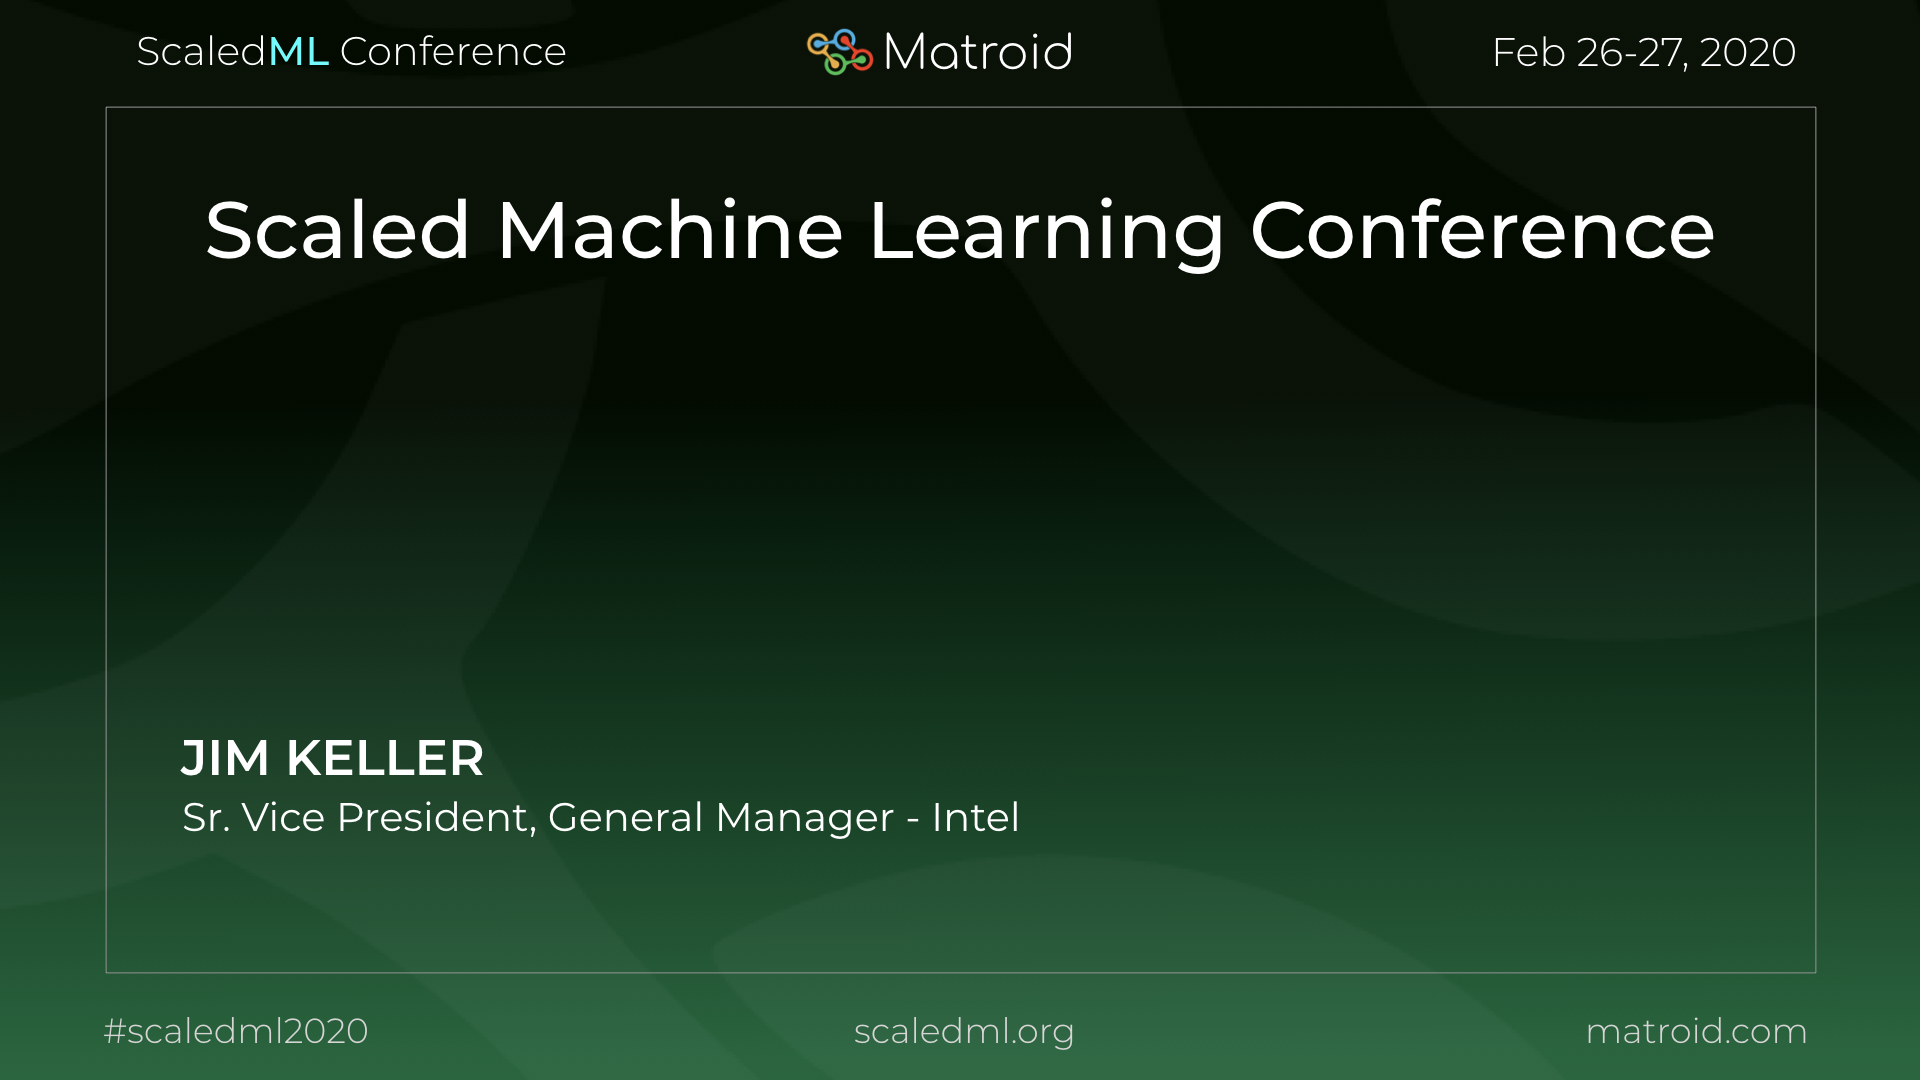 Jim Keller Intel ScaledML Conference TPU CPU GPU Computer Vision AI Artificial Intelligence Machine Learning